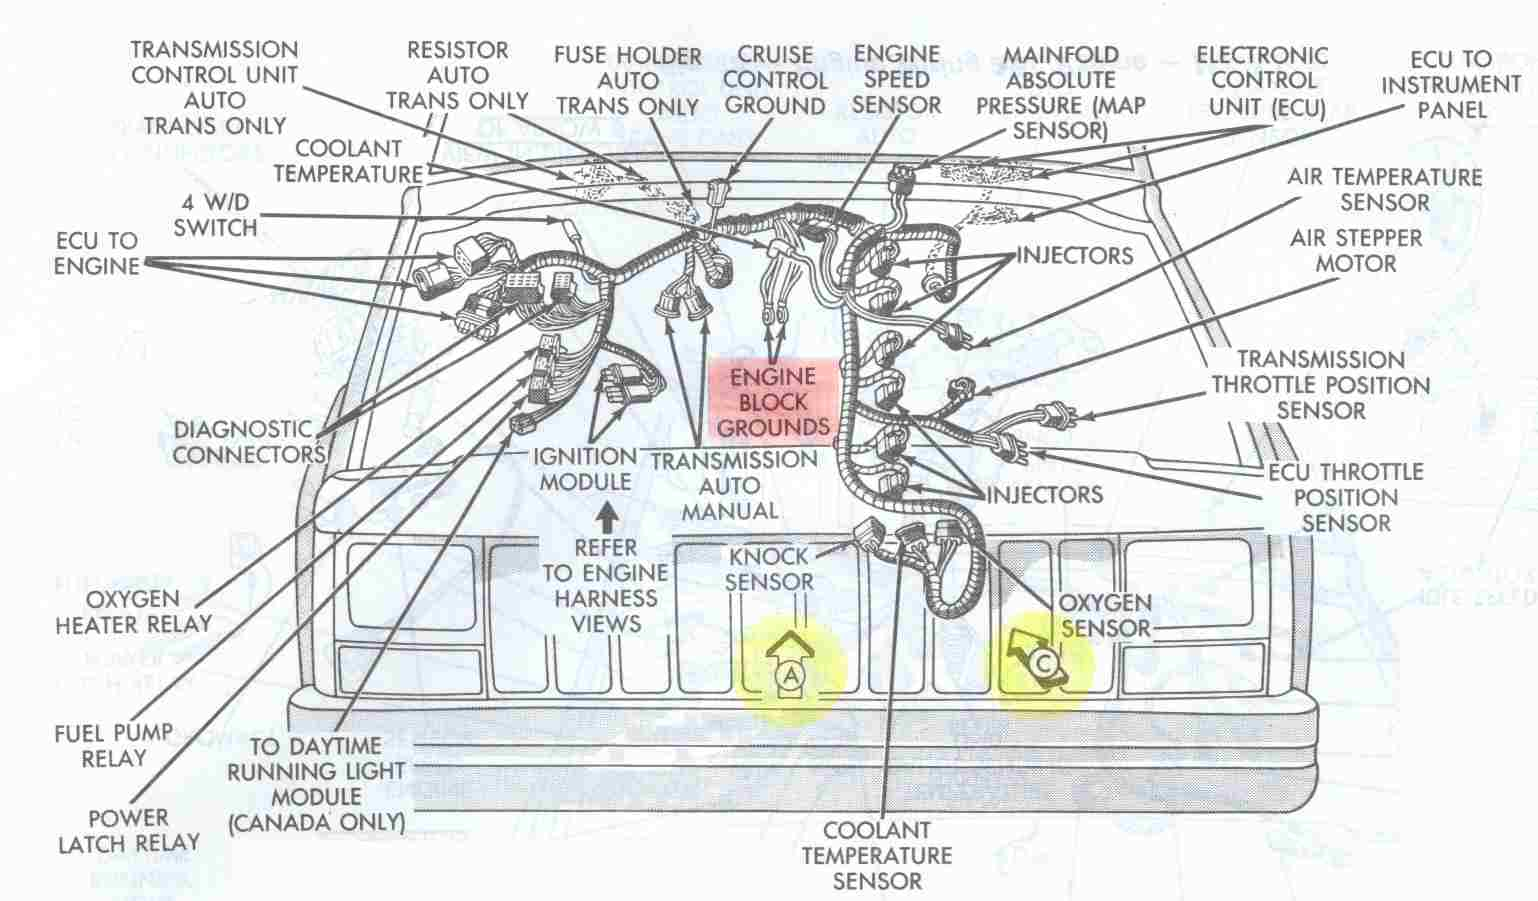 1999 Grand Cherokee Engine Diagram Data Wiring Schema 2004 Jeep Liberty  Cooling Fan Wiring Diagram 2004 Jeep Grand Cherokee Wiring Harness Diagram